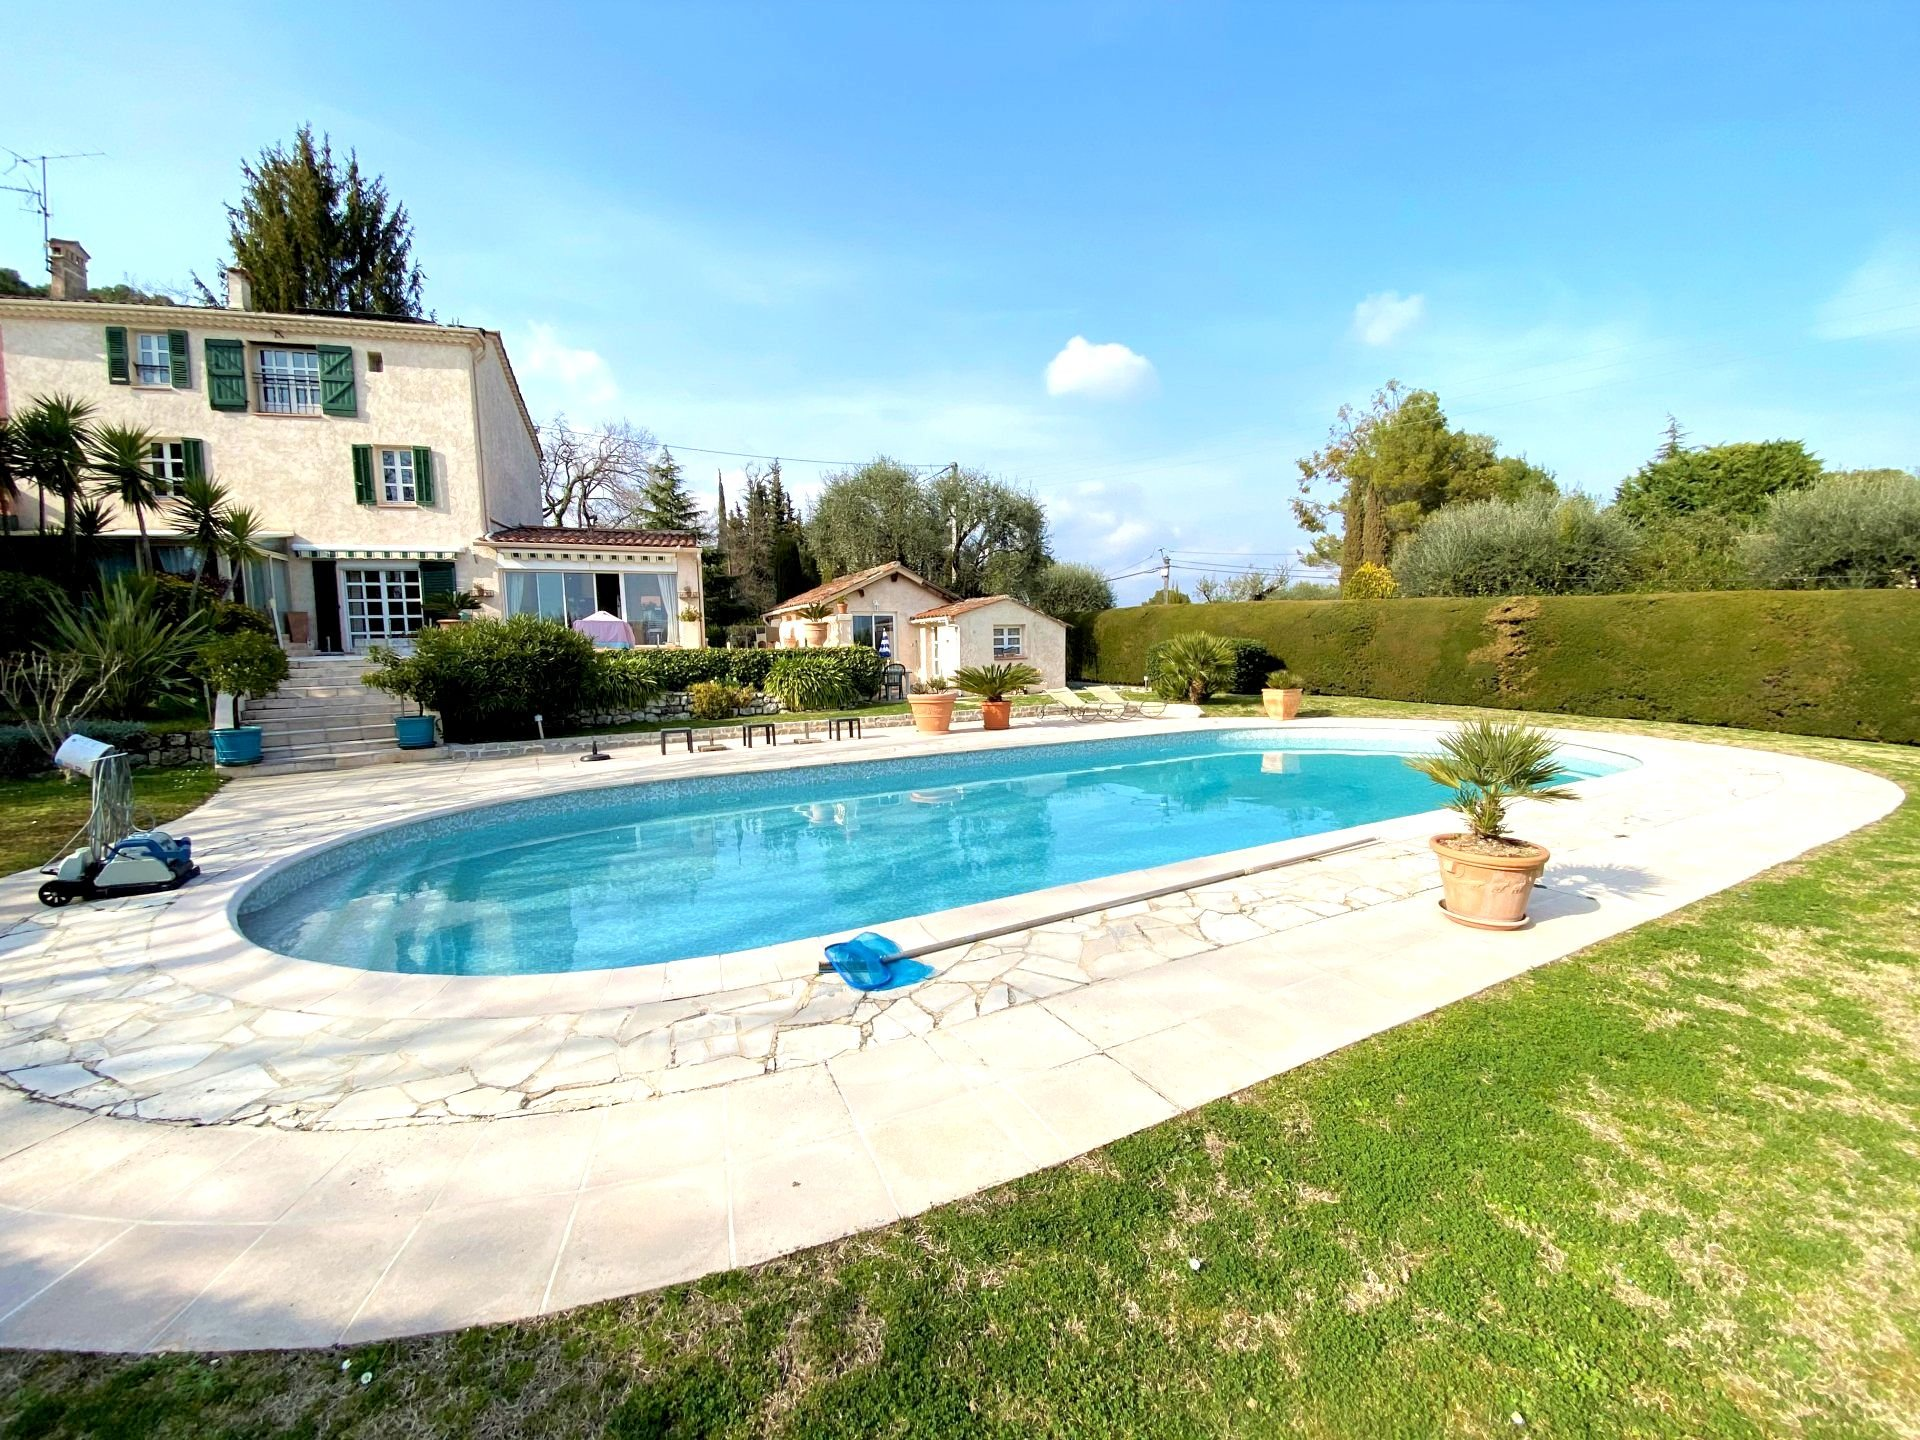 MOUGINS RESIDENTIAL SALE VILLA IN QUIET ABSOLUTE SEA SEA VIEW ABSOLUTE